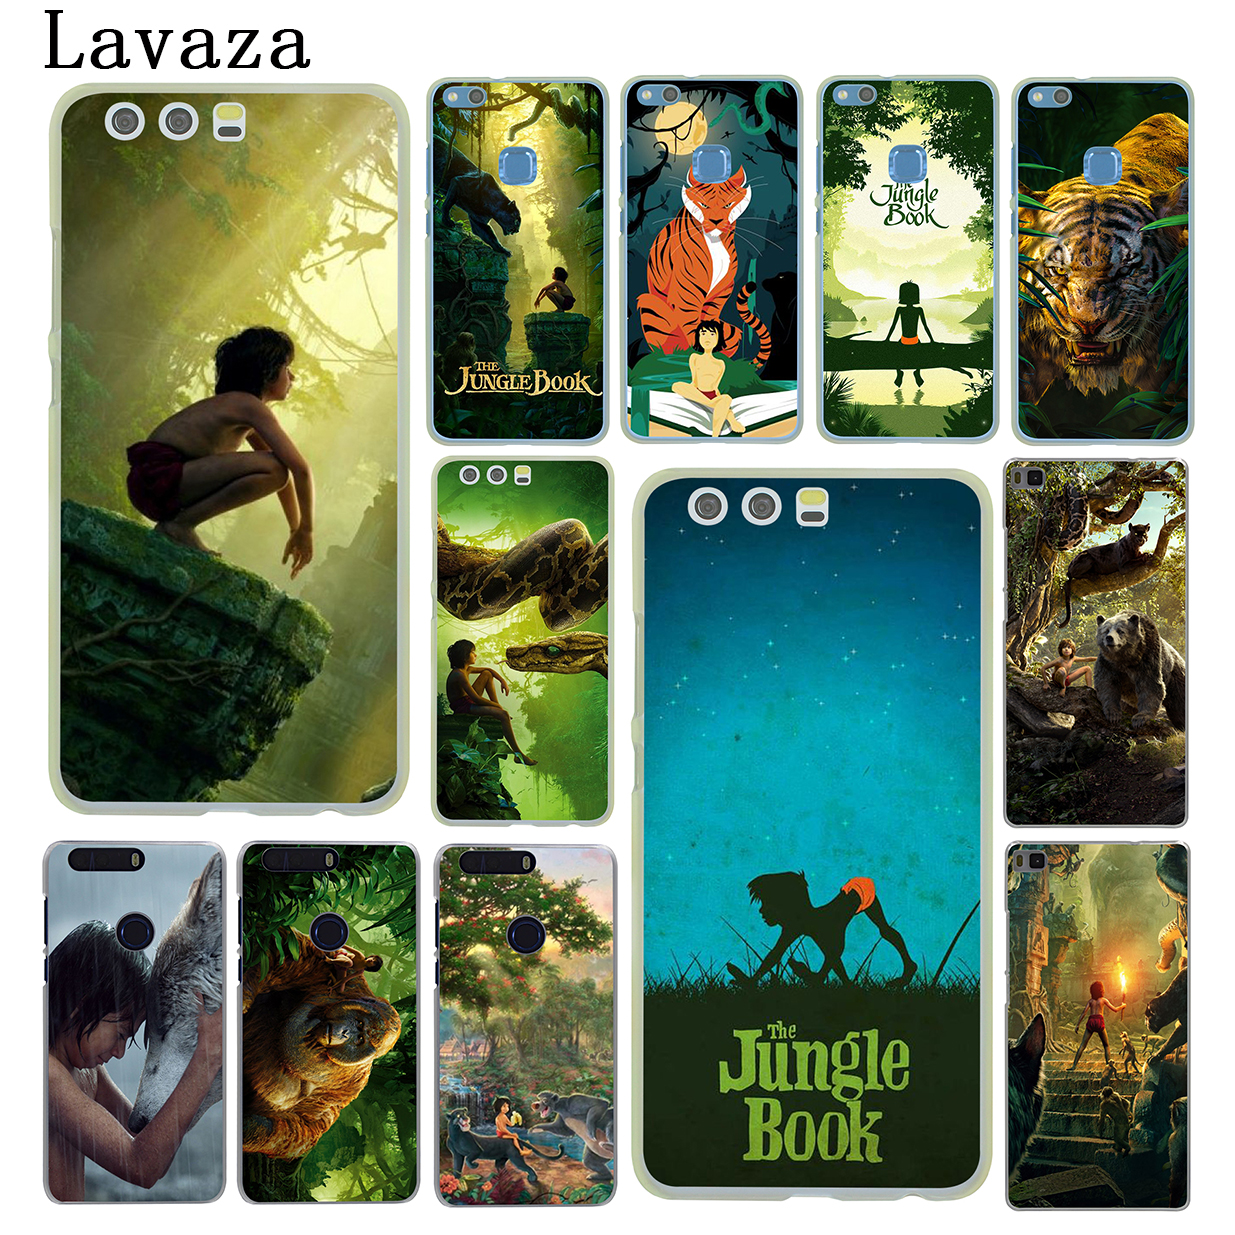 Lavaza The Jungle Book Hard Phone Case for Huawei P10 P6 P7 P8 P9 Lite Plus 2015 2016 Y3 Y5 Y6 II Y7 2017 G7 Cover